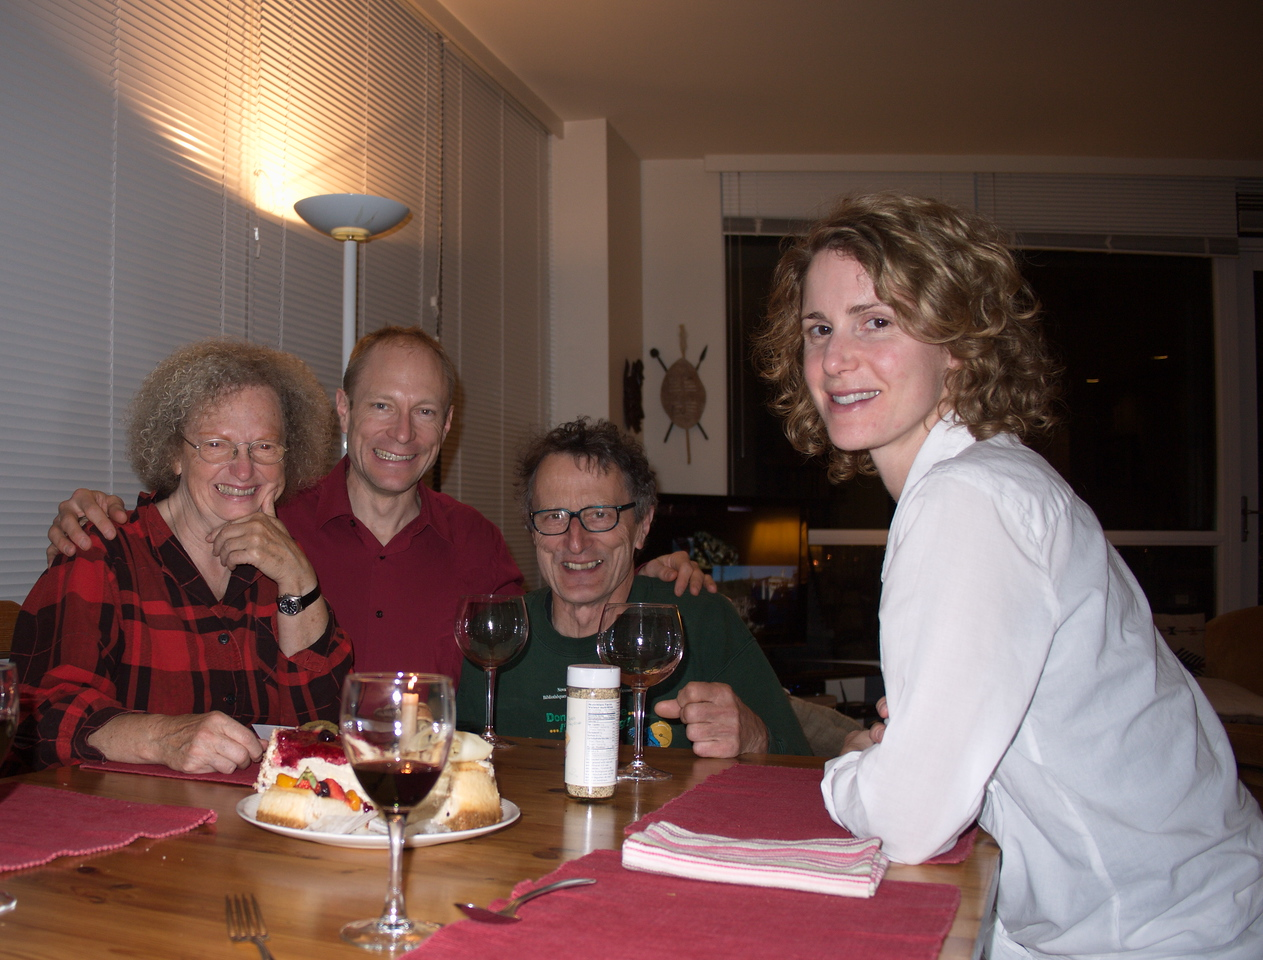 This photo is taken about a month later - for Marion's birthday!